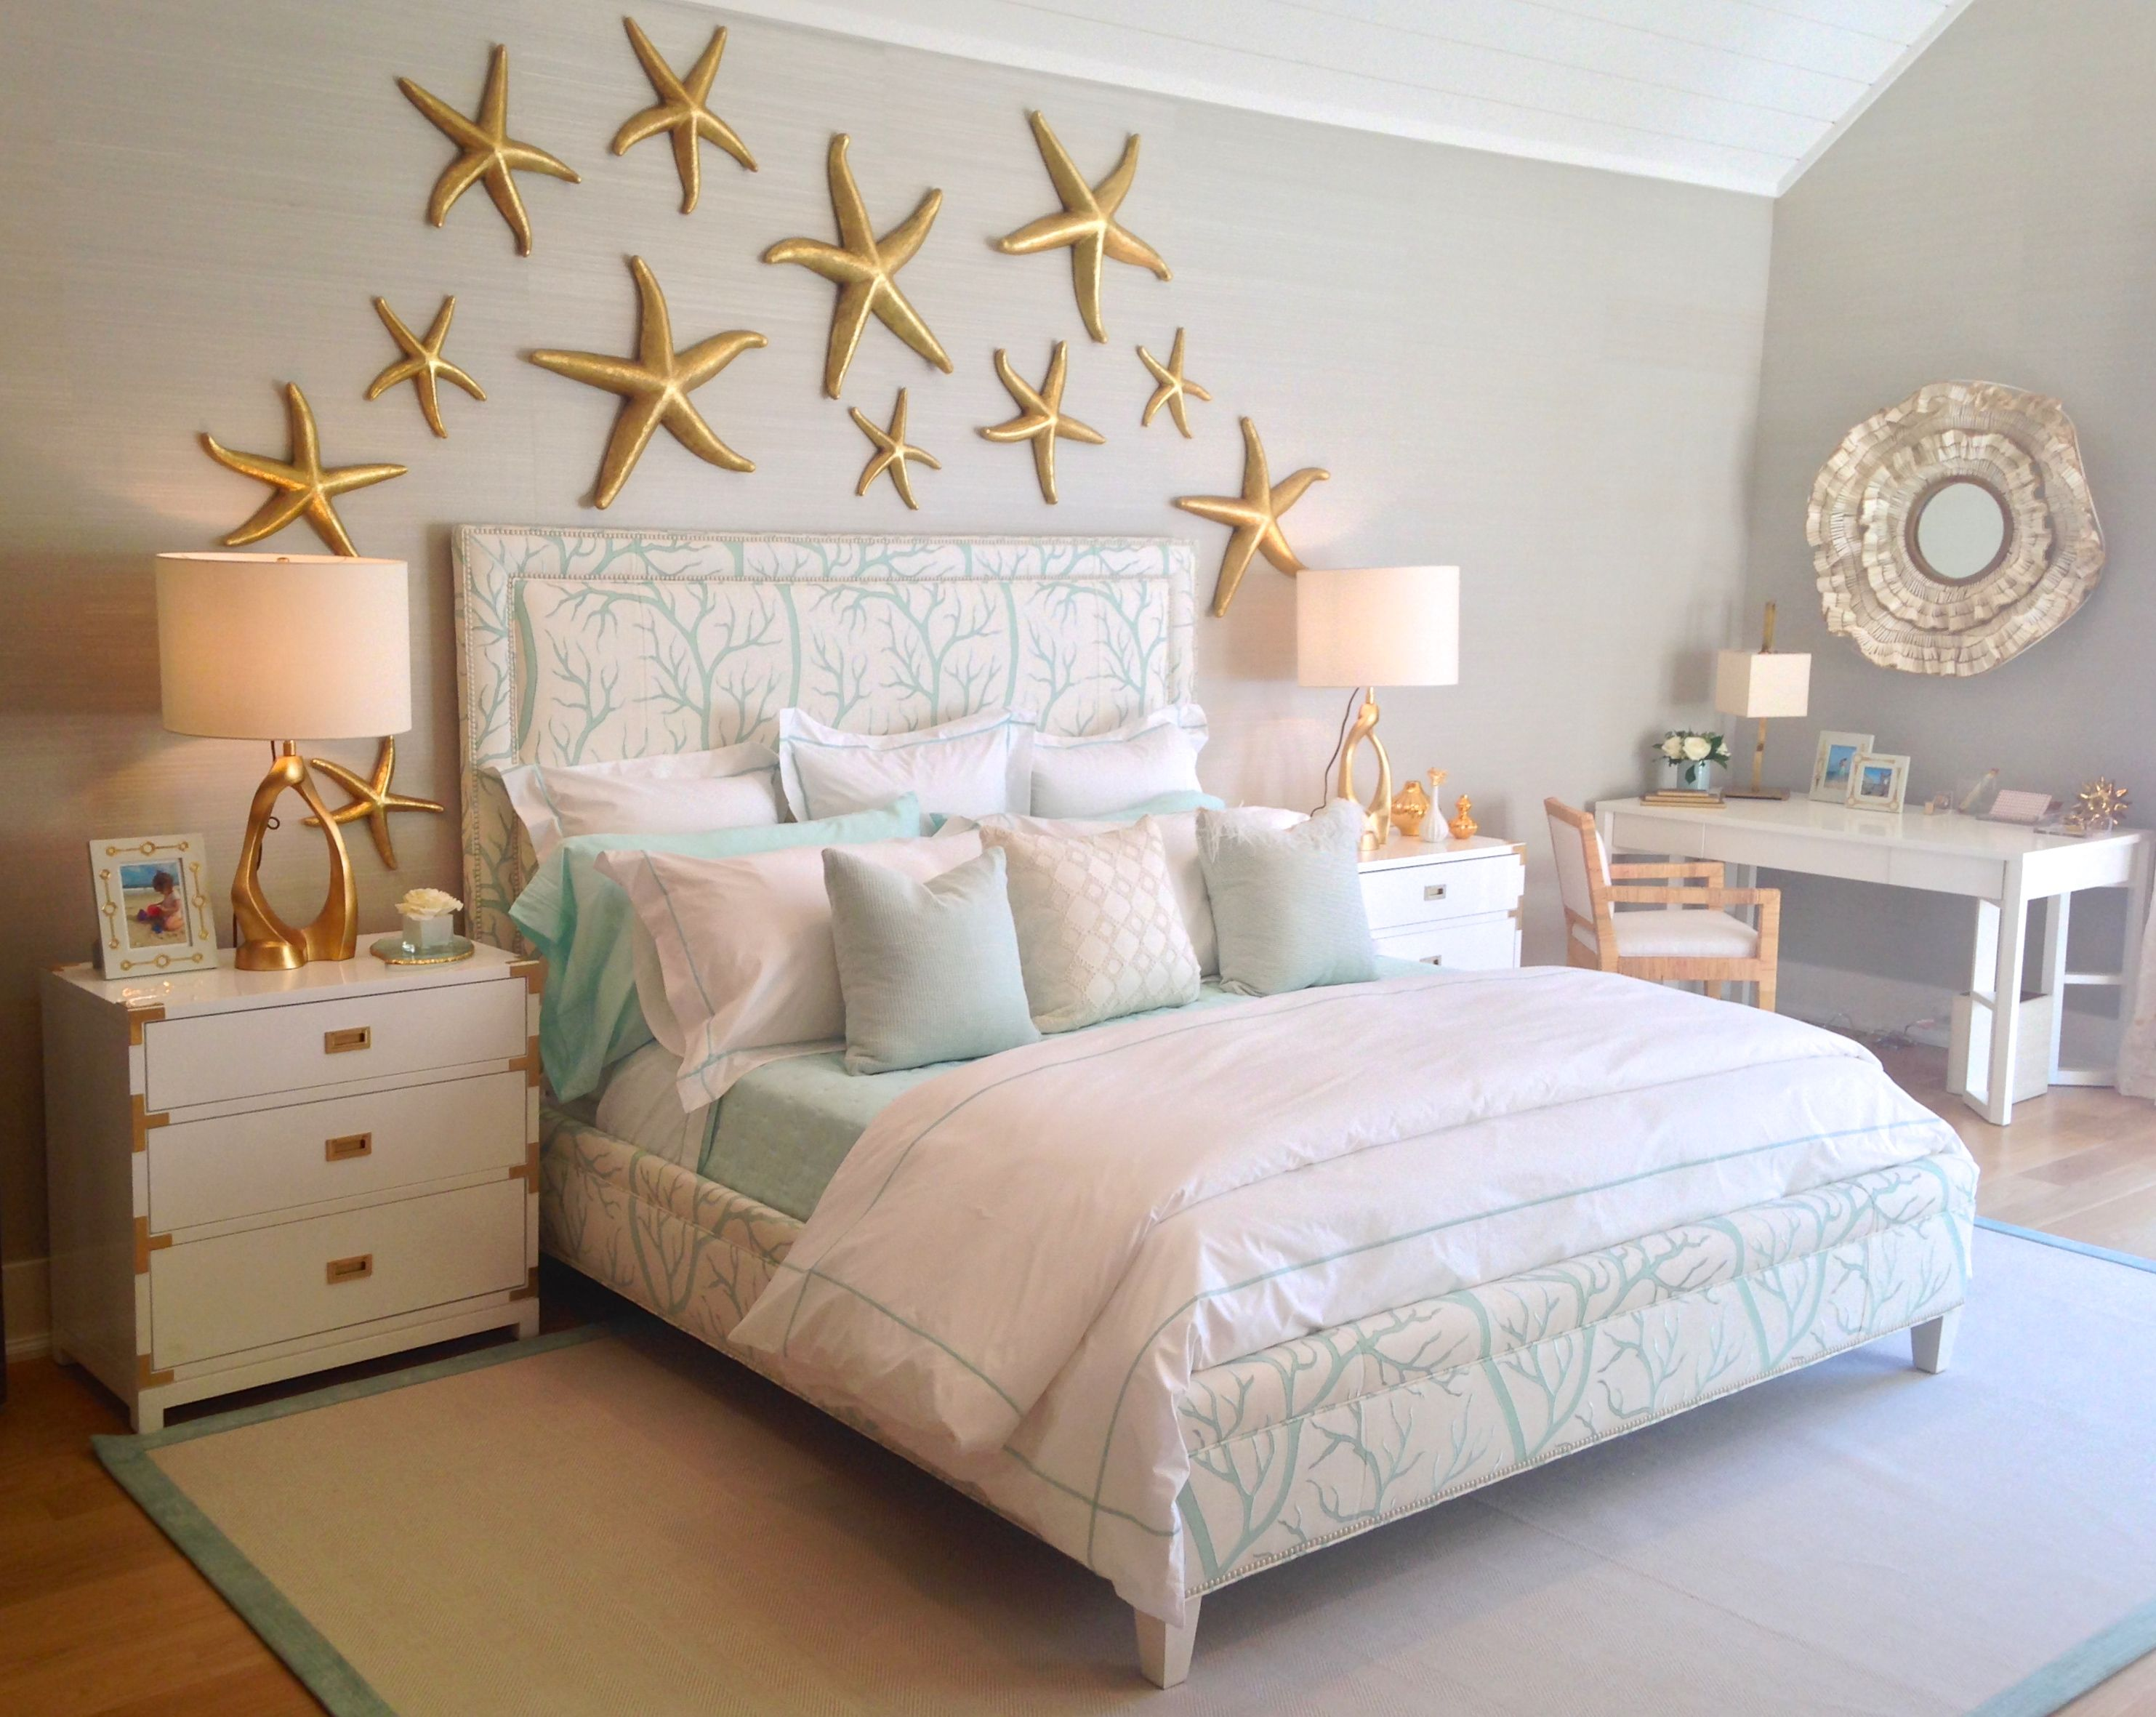 Beach bedroom designs for girls - If You Have Been Looking Designs Of Bedroom Sand Is On This Page It Seems That You Are Serious About It Of All The Rooms